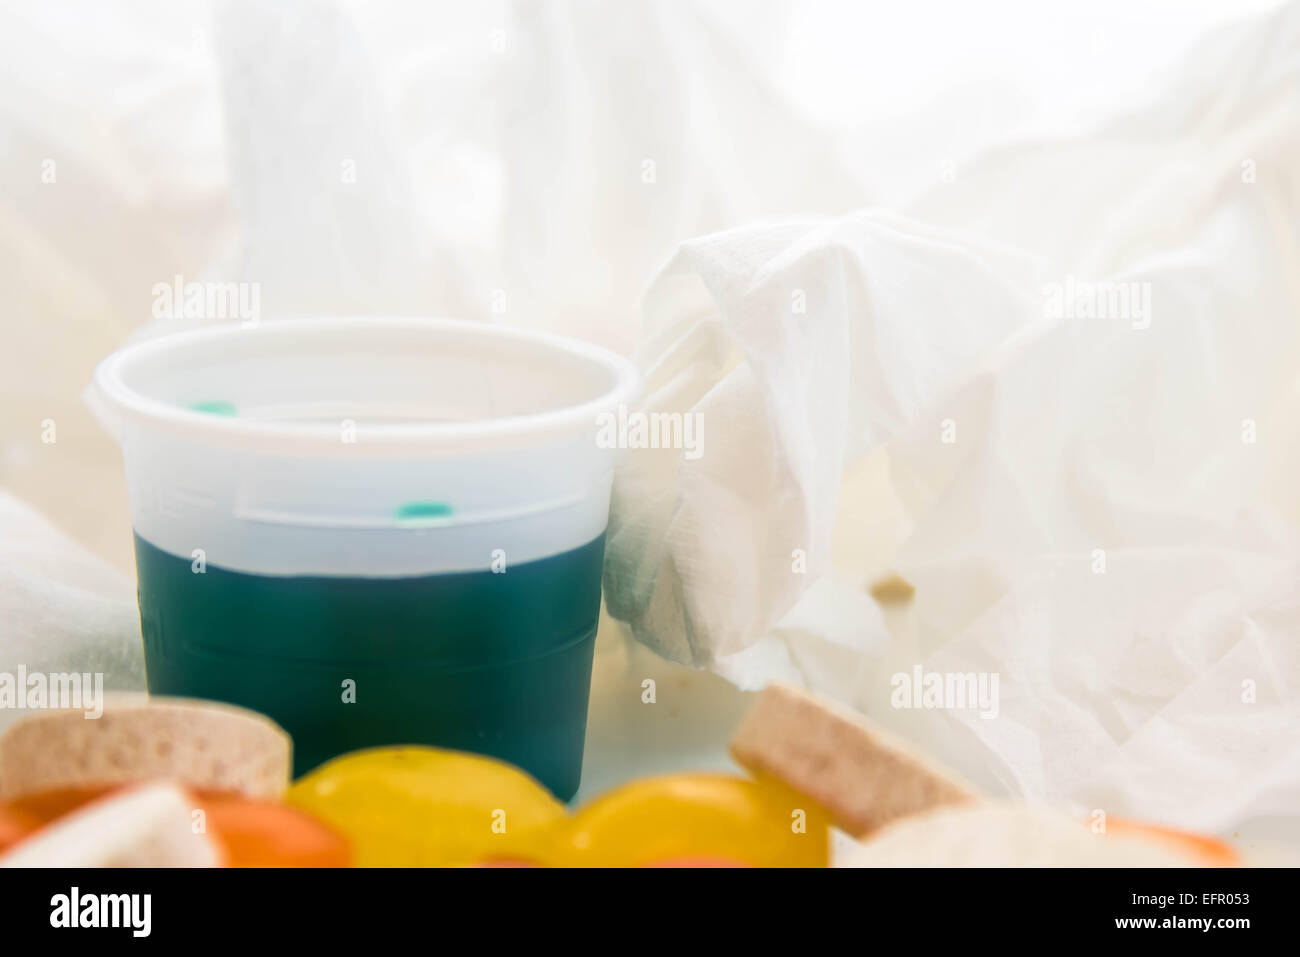 cold and flu season medicines for cough, sneeze, and sore throat - Stock Image